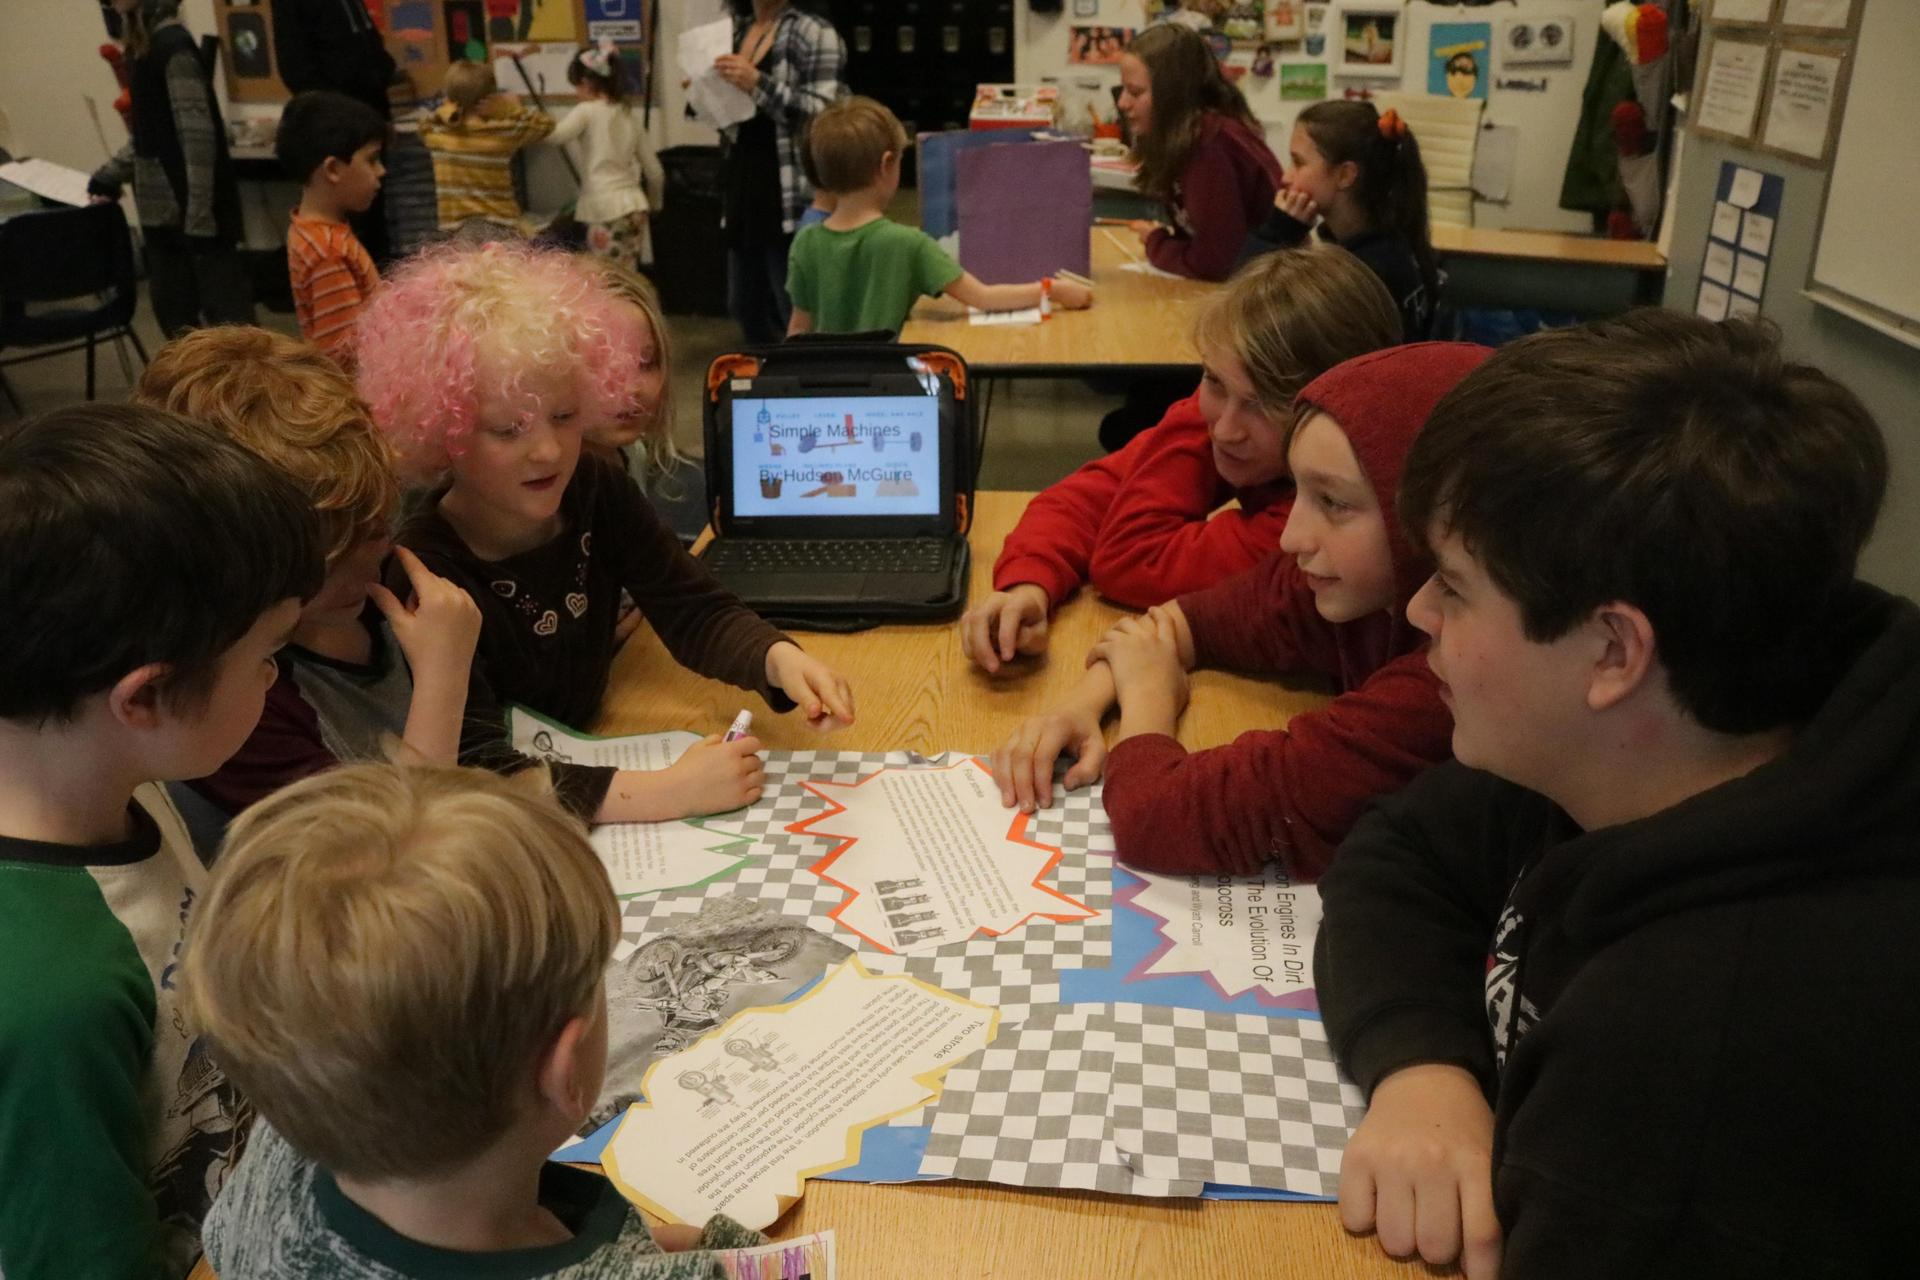 Students collaborate around a computer.